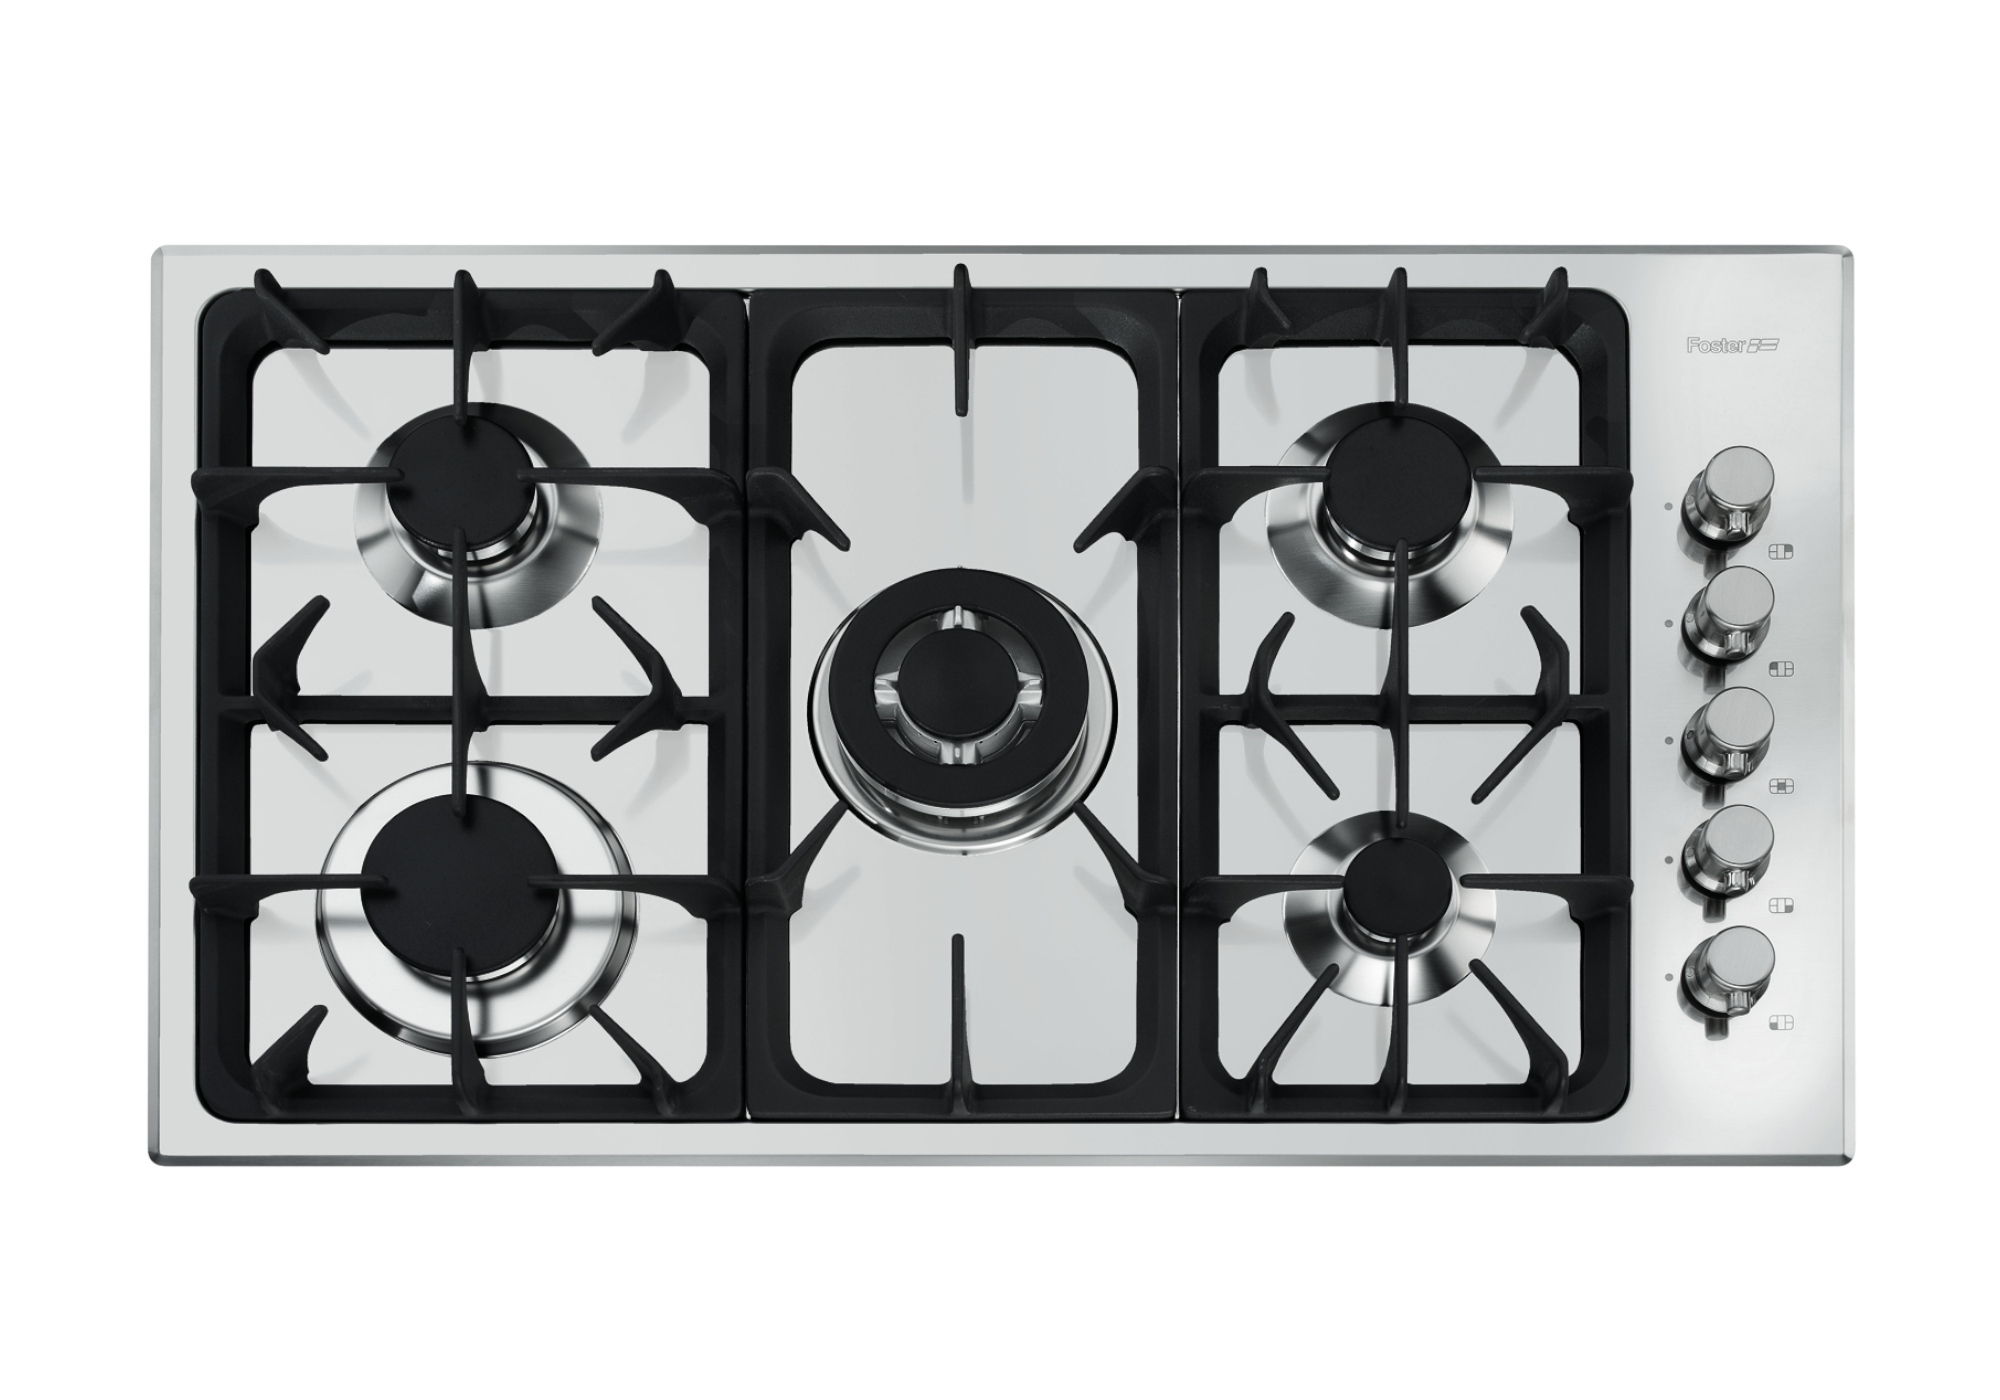 Professional series cooktop – 34″ x 20″ – FM - 7245 962